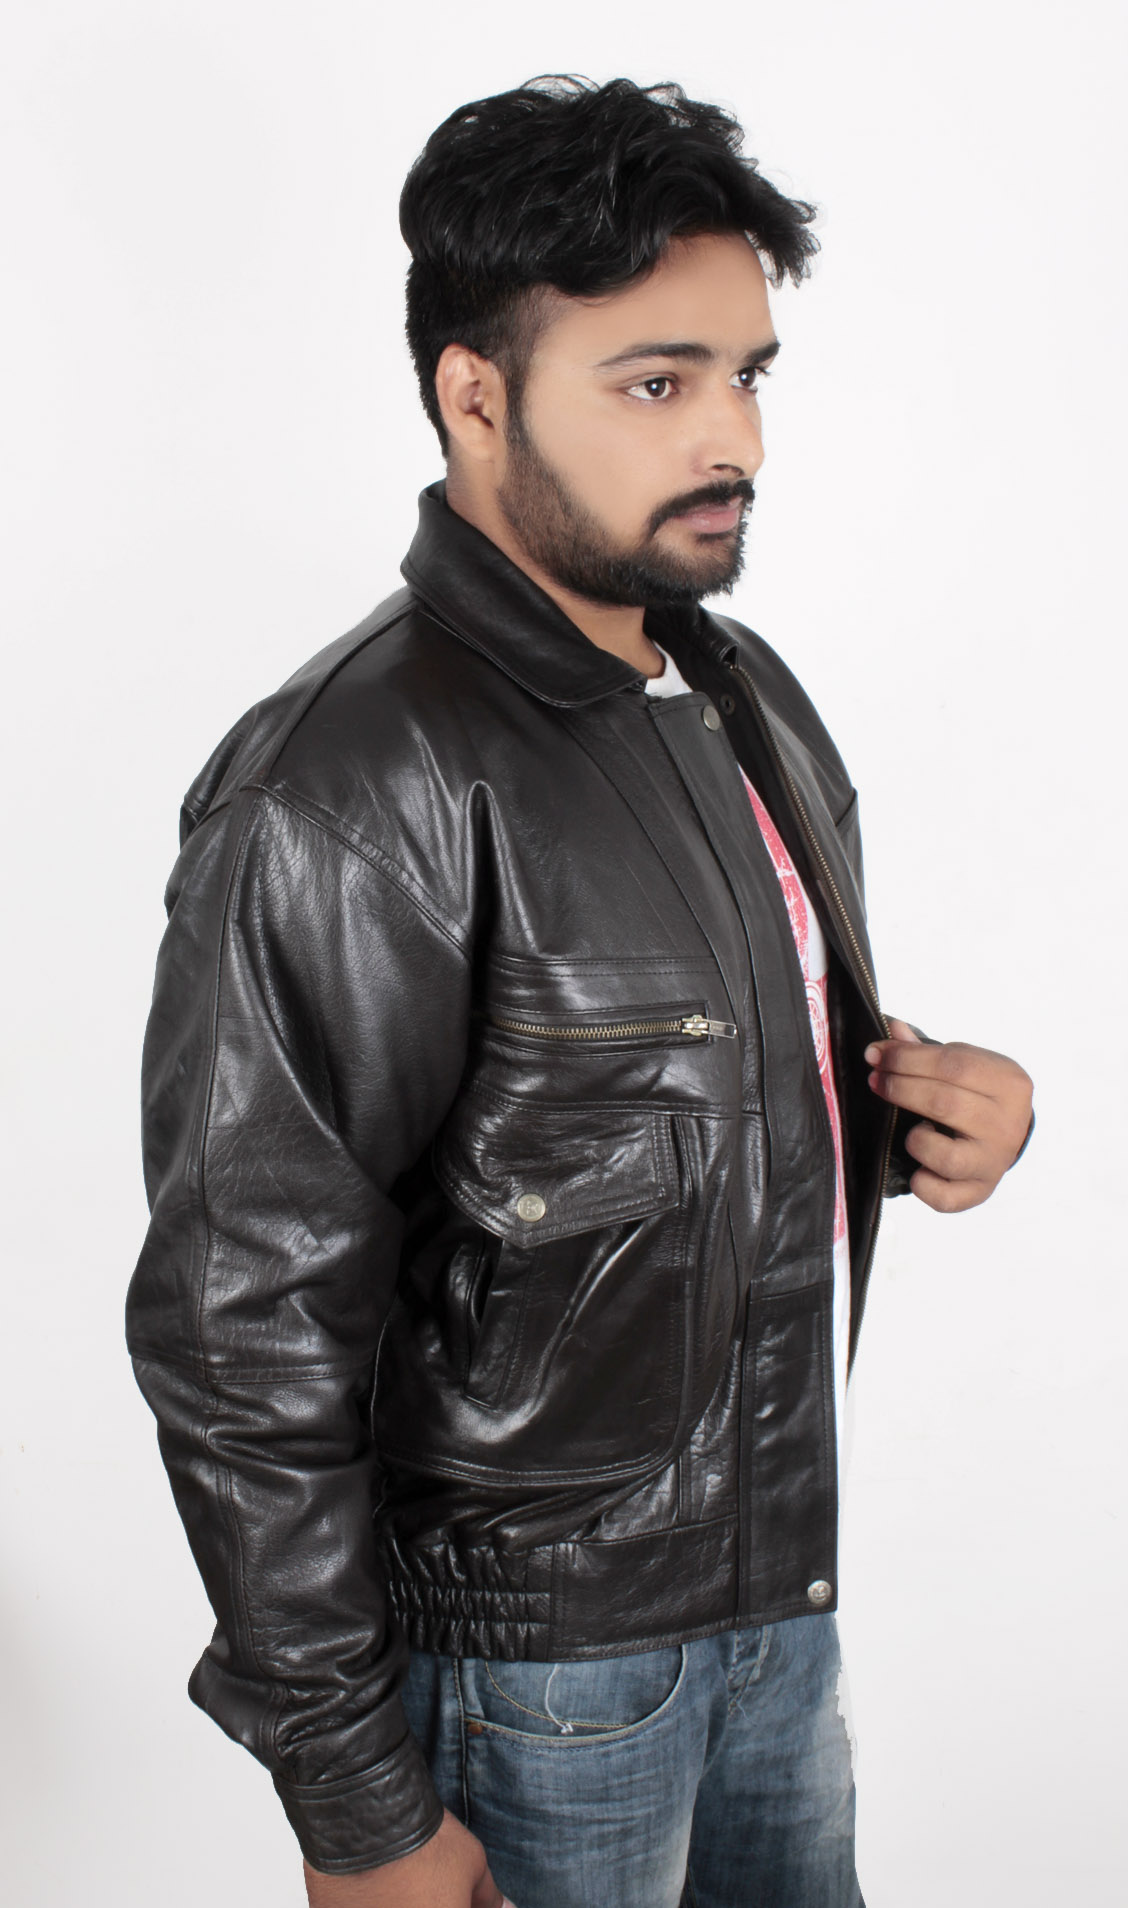 elastic leather mens jackets price in pakistan  fashion fair in pakistan at symbios pk